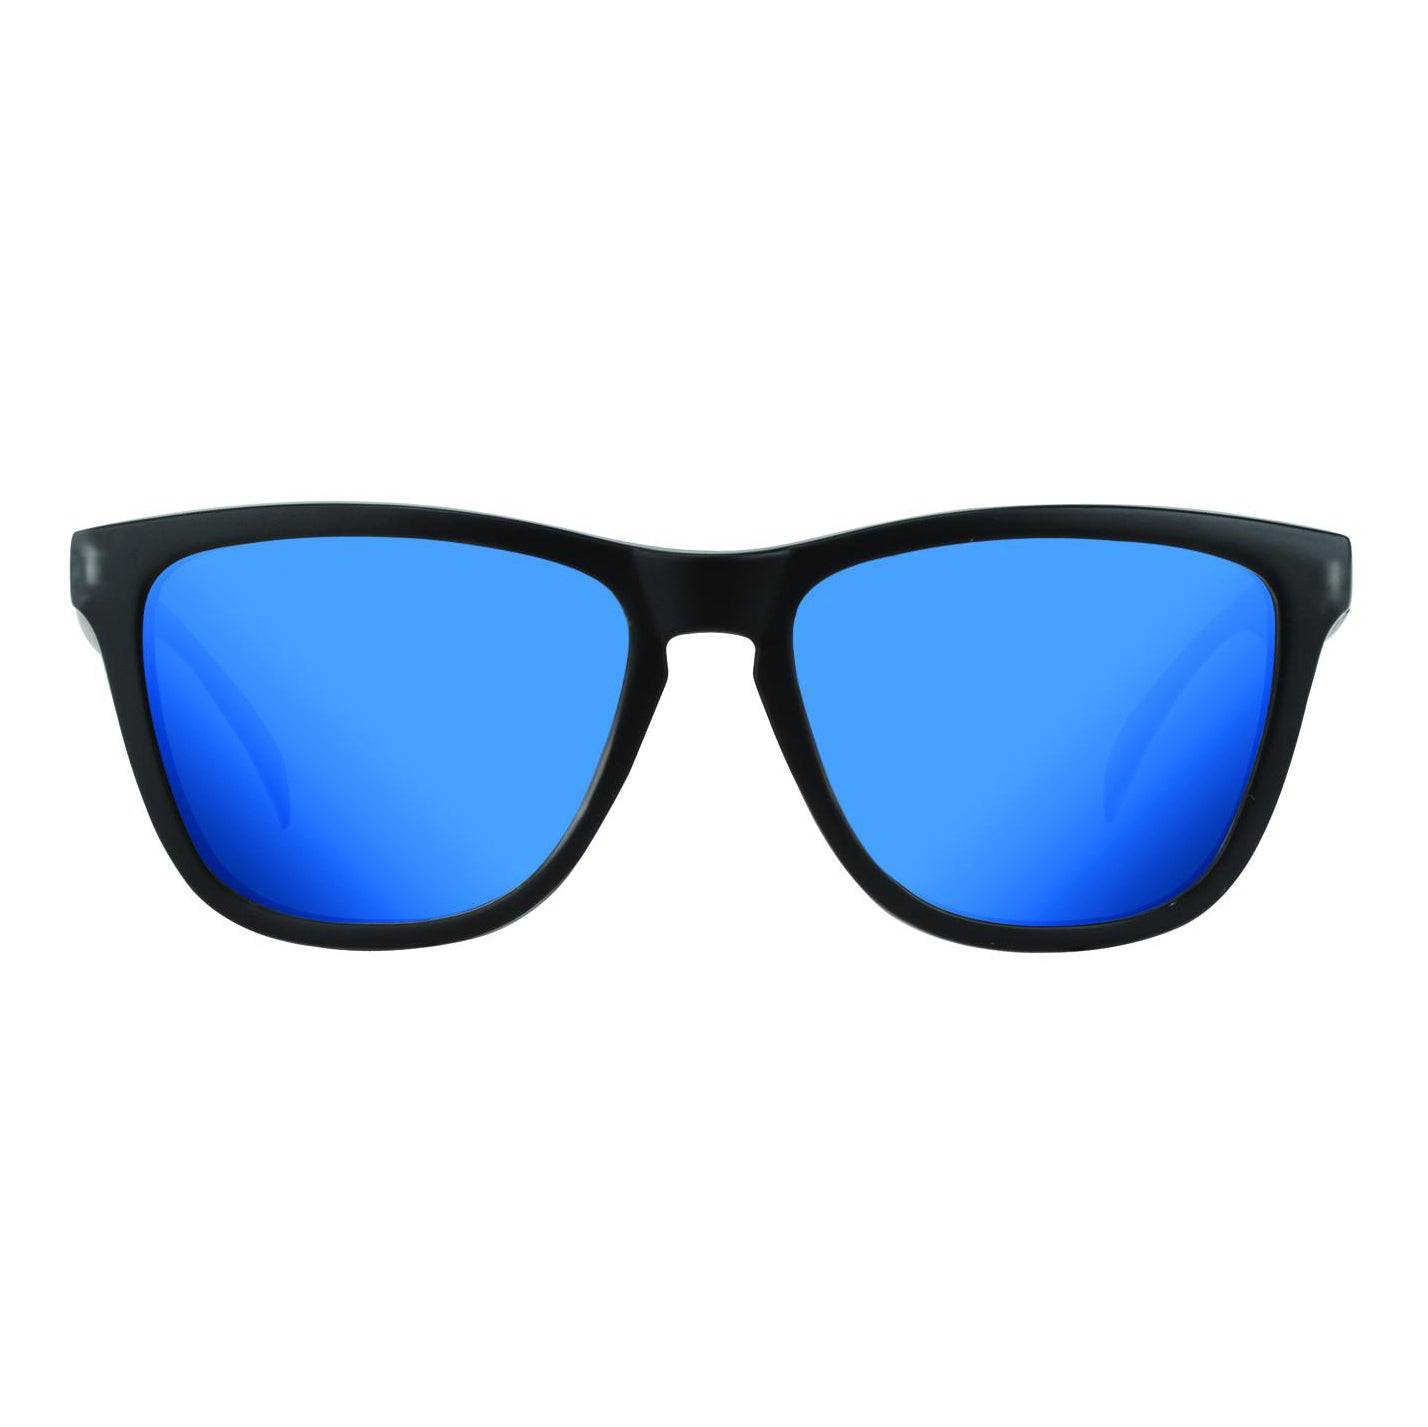 Zeezo Polarized Black/Blue